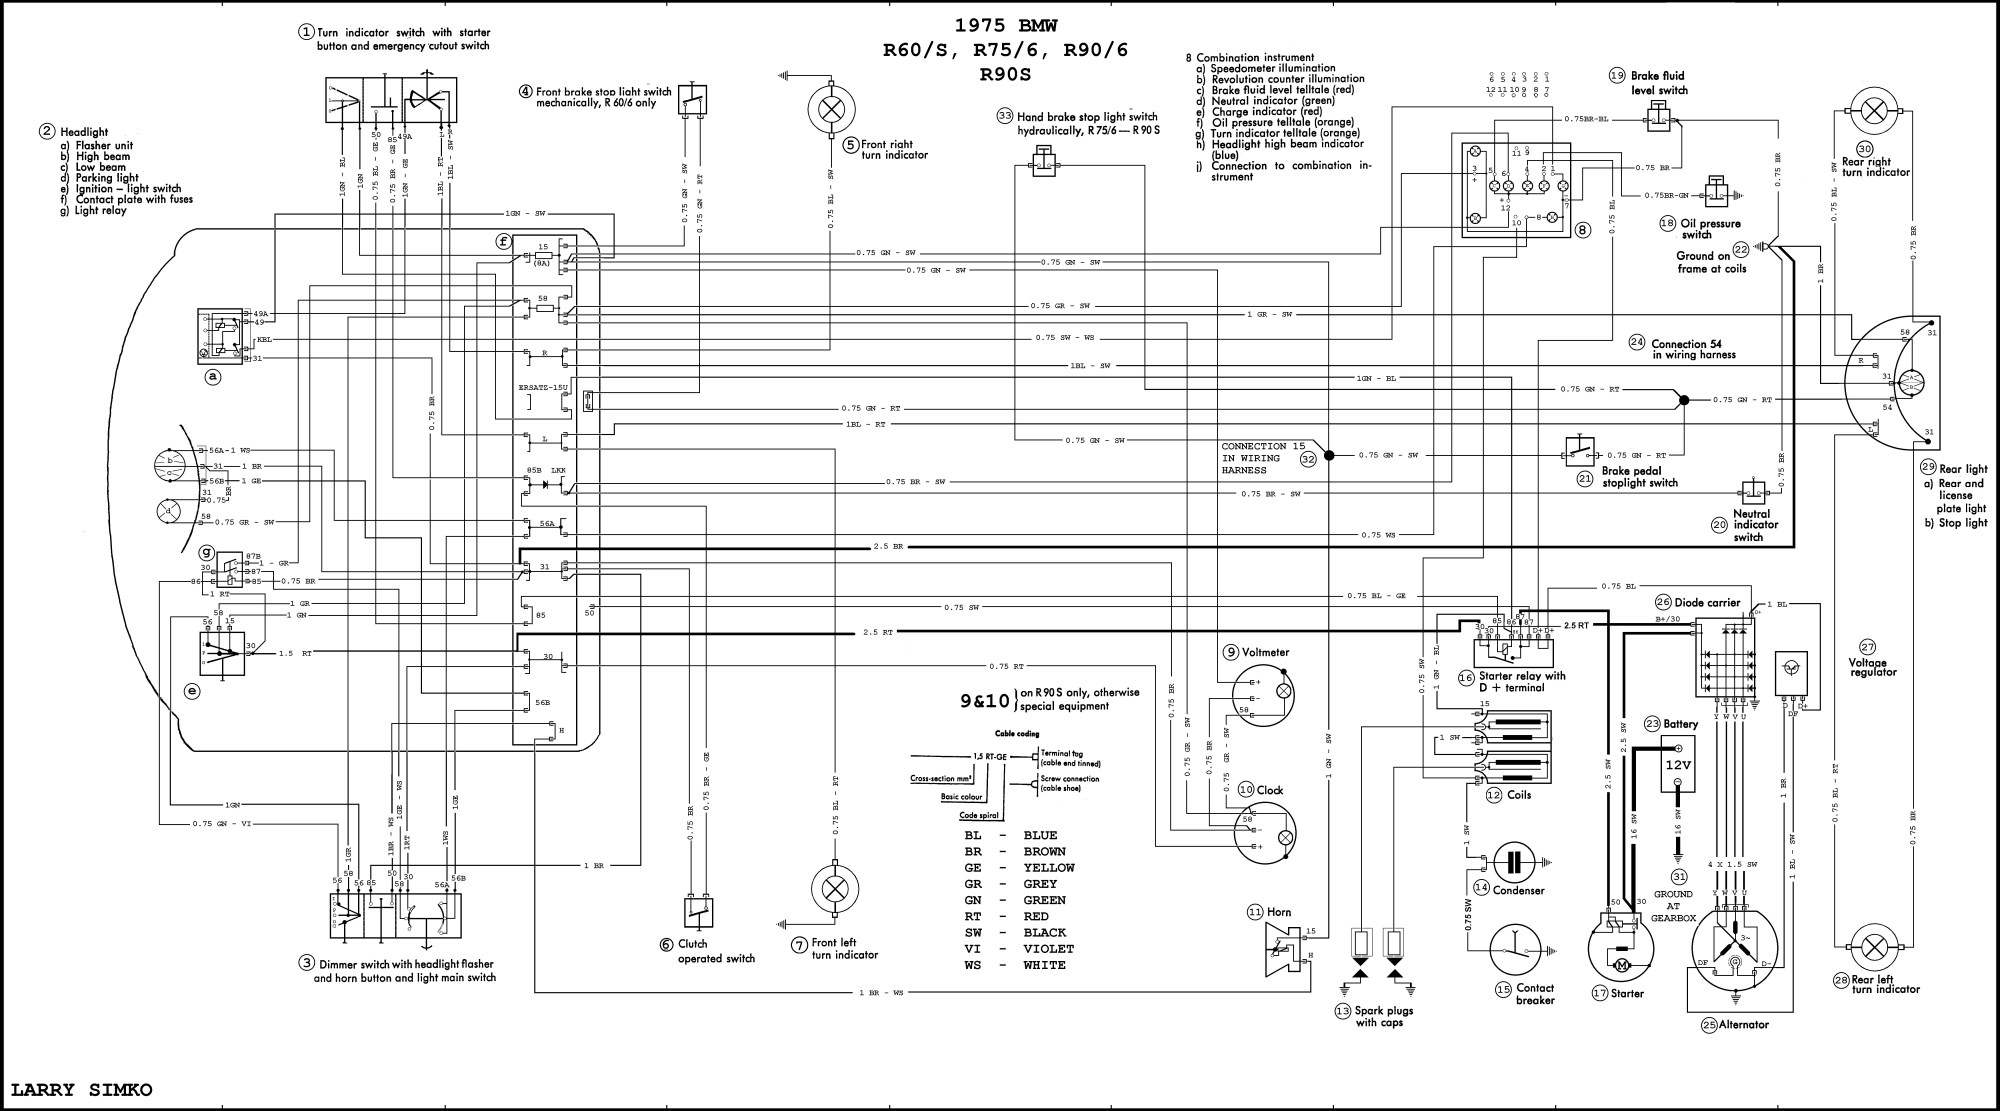 hight resolution of electrical schematic diagrams for bmw airhead motorcycles for 1975electrical schematic diagrams for bmw airhead motorcycles for